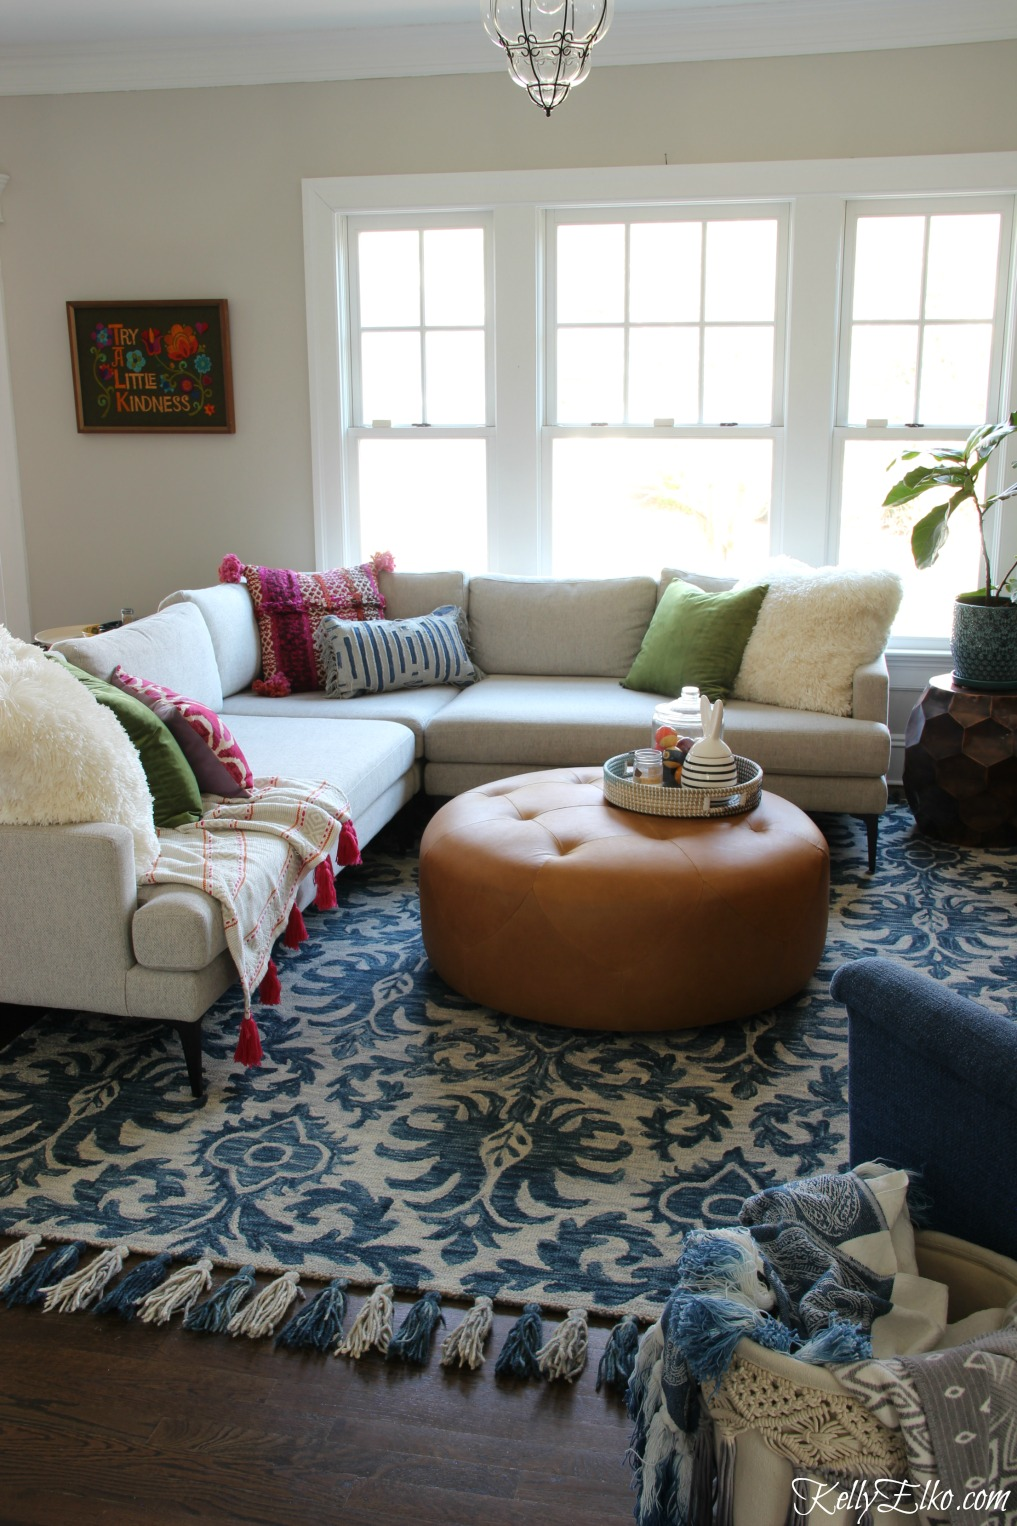 Love this spring family room in blues, pinks and greens kellyelko.com #familyroom #homedecor #sectional #bohodecor